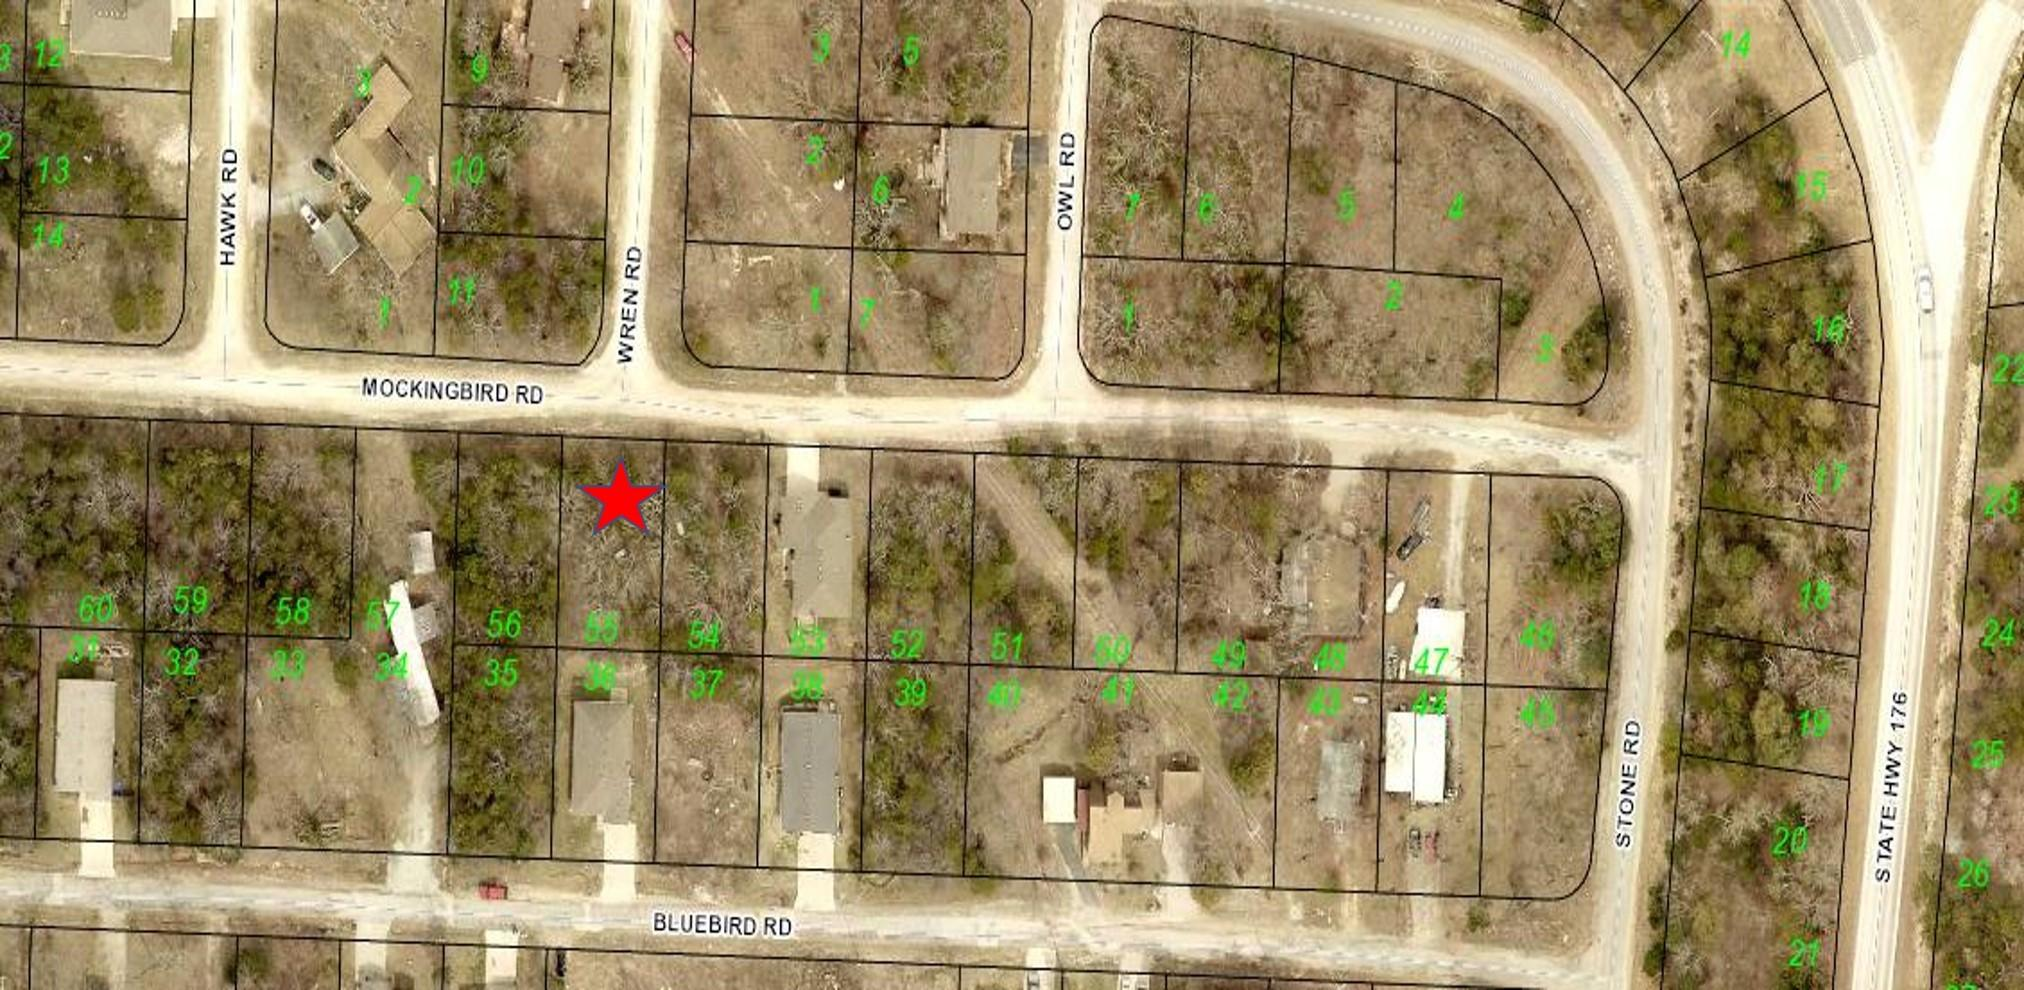 Tbd Lot 55 Mockingbird Road Merriam Woods, MO 65740